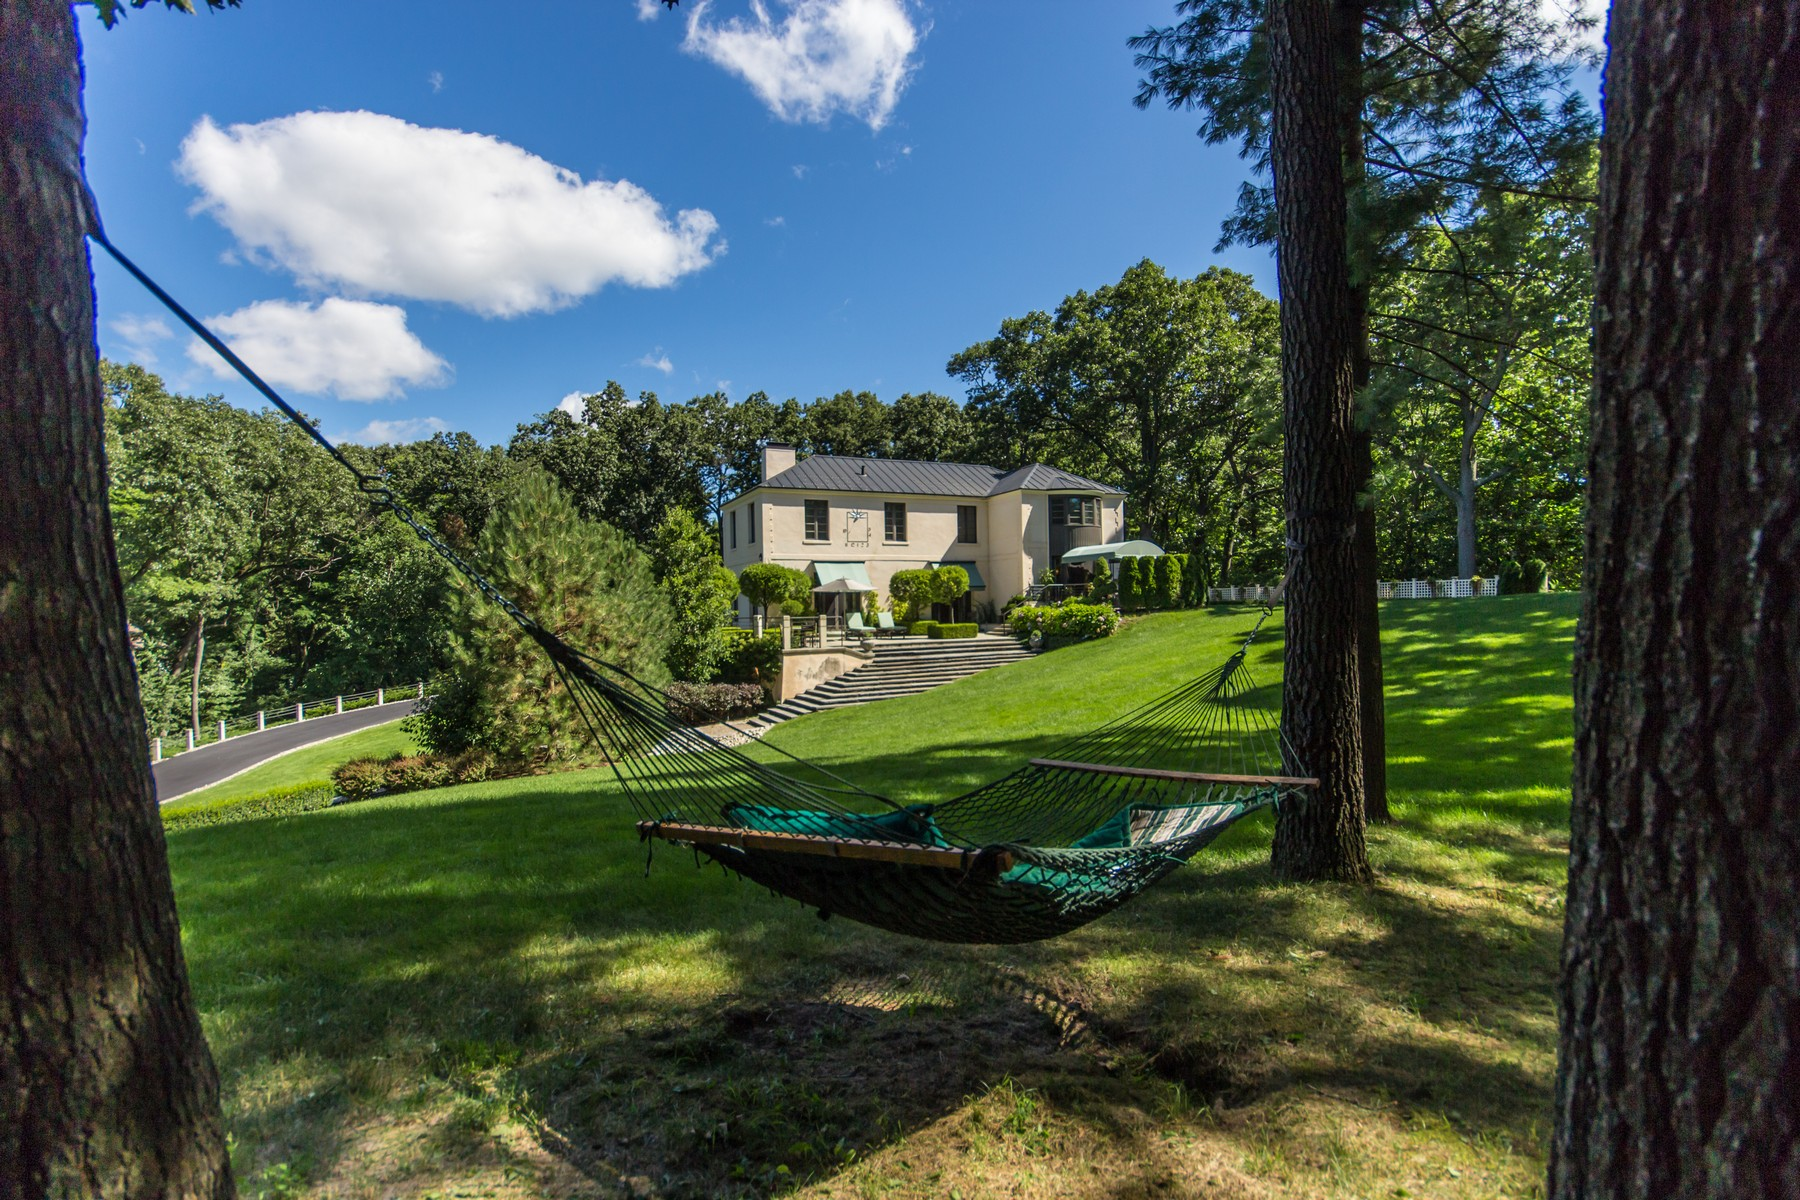 Property For Sale at Peaceful and Private in the Heart of Old Loudonvil